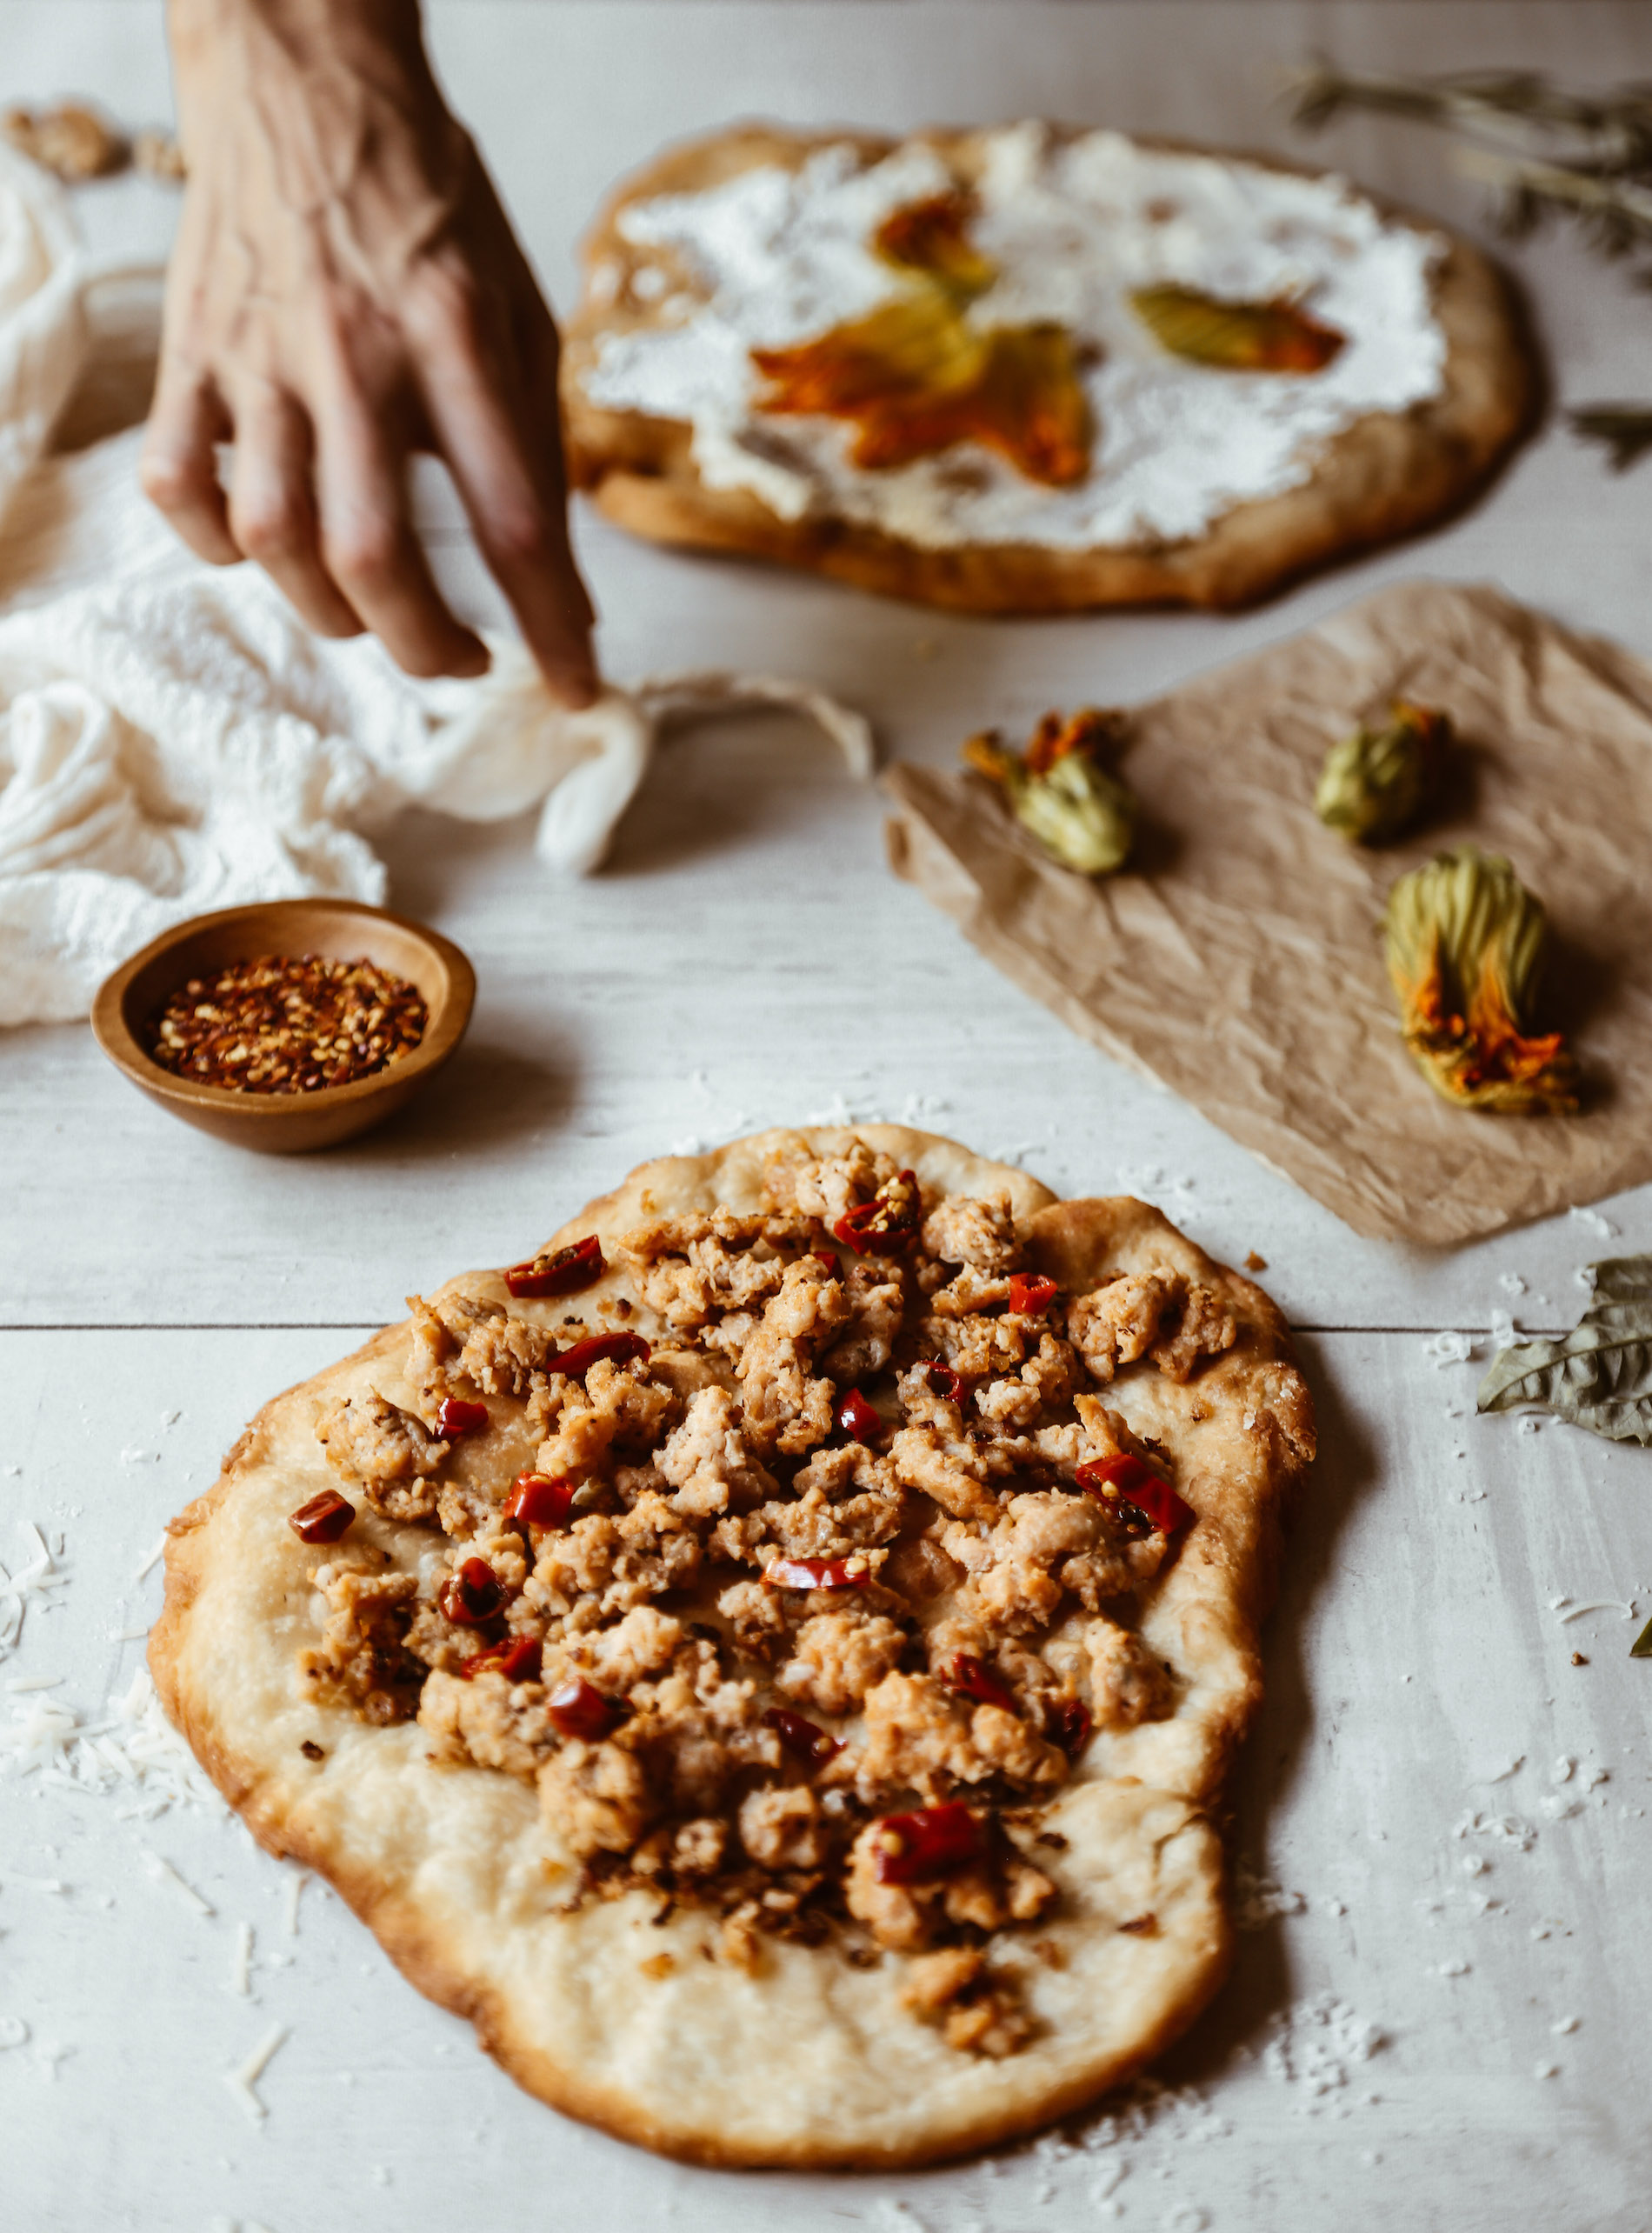 fried pizza with squash blossoms-4.jpg